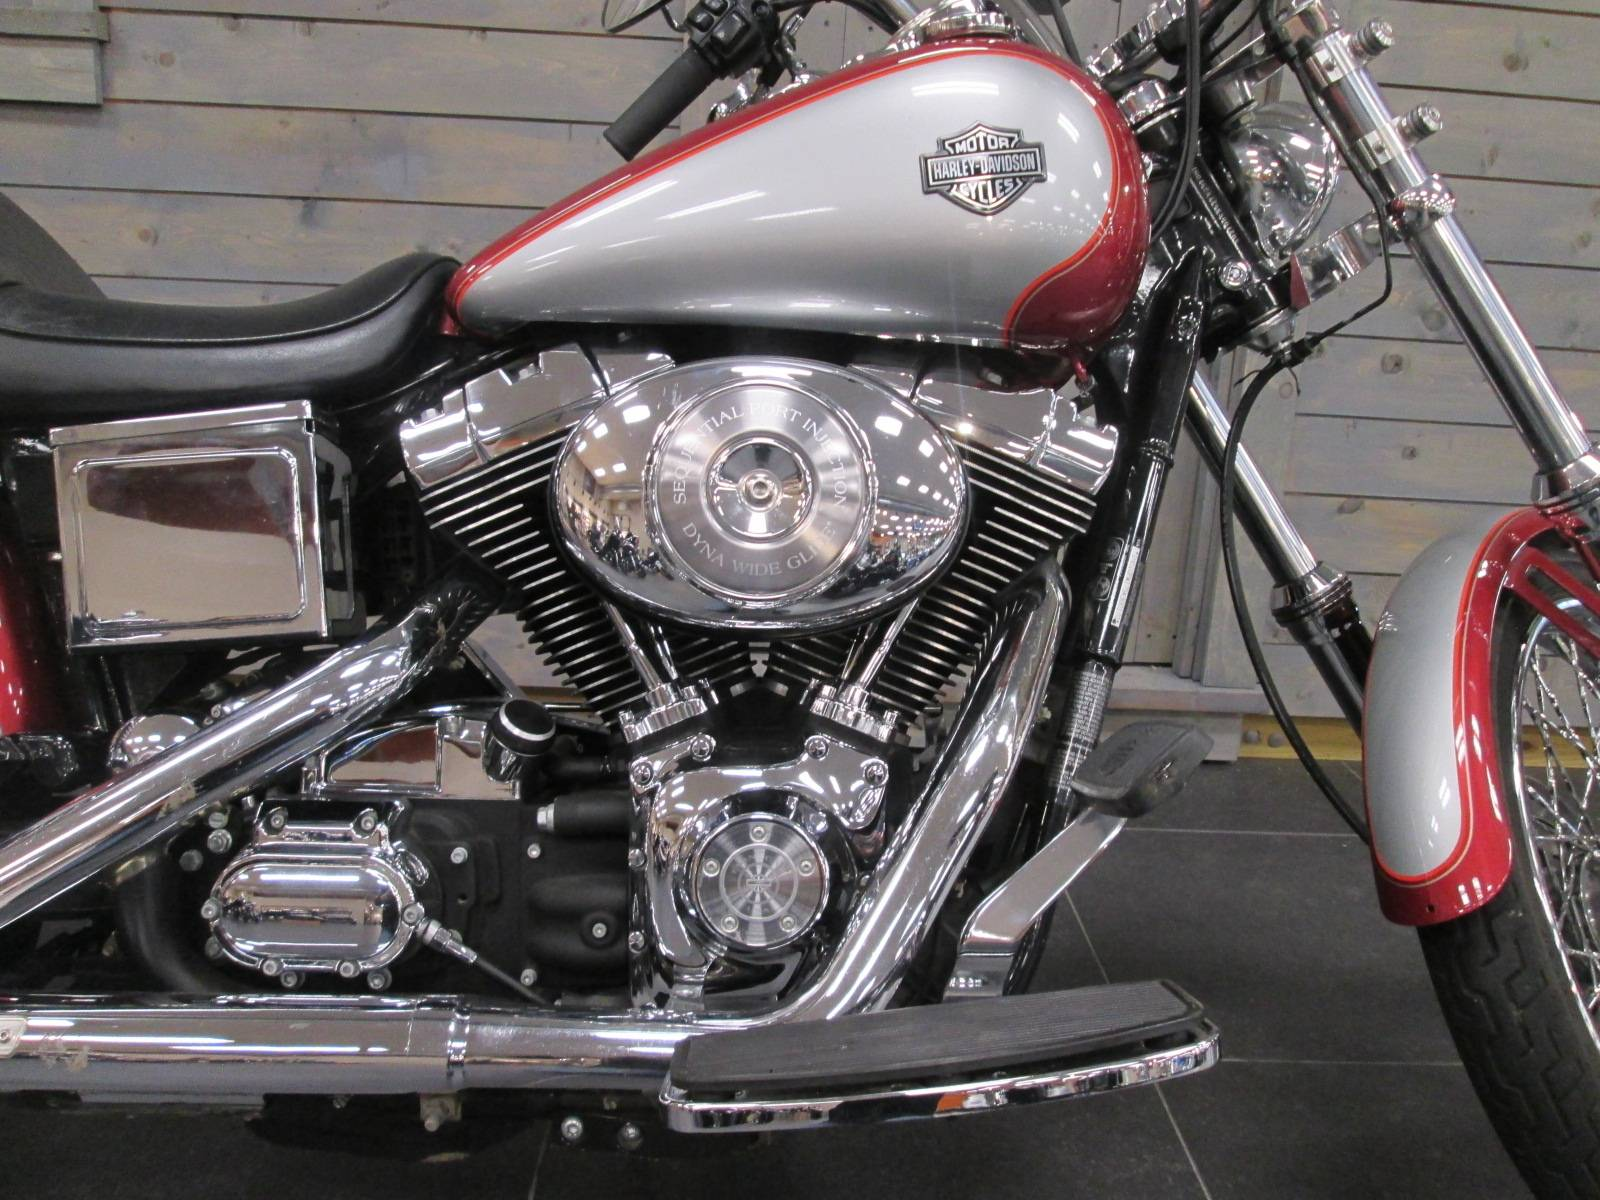 2005 Harley-Davidson FXDWG/FXDWGI Dyna Wide Glide® in Lafayette, Indiana - Photo 2